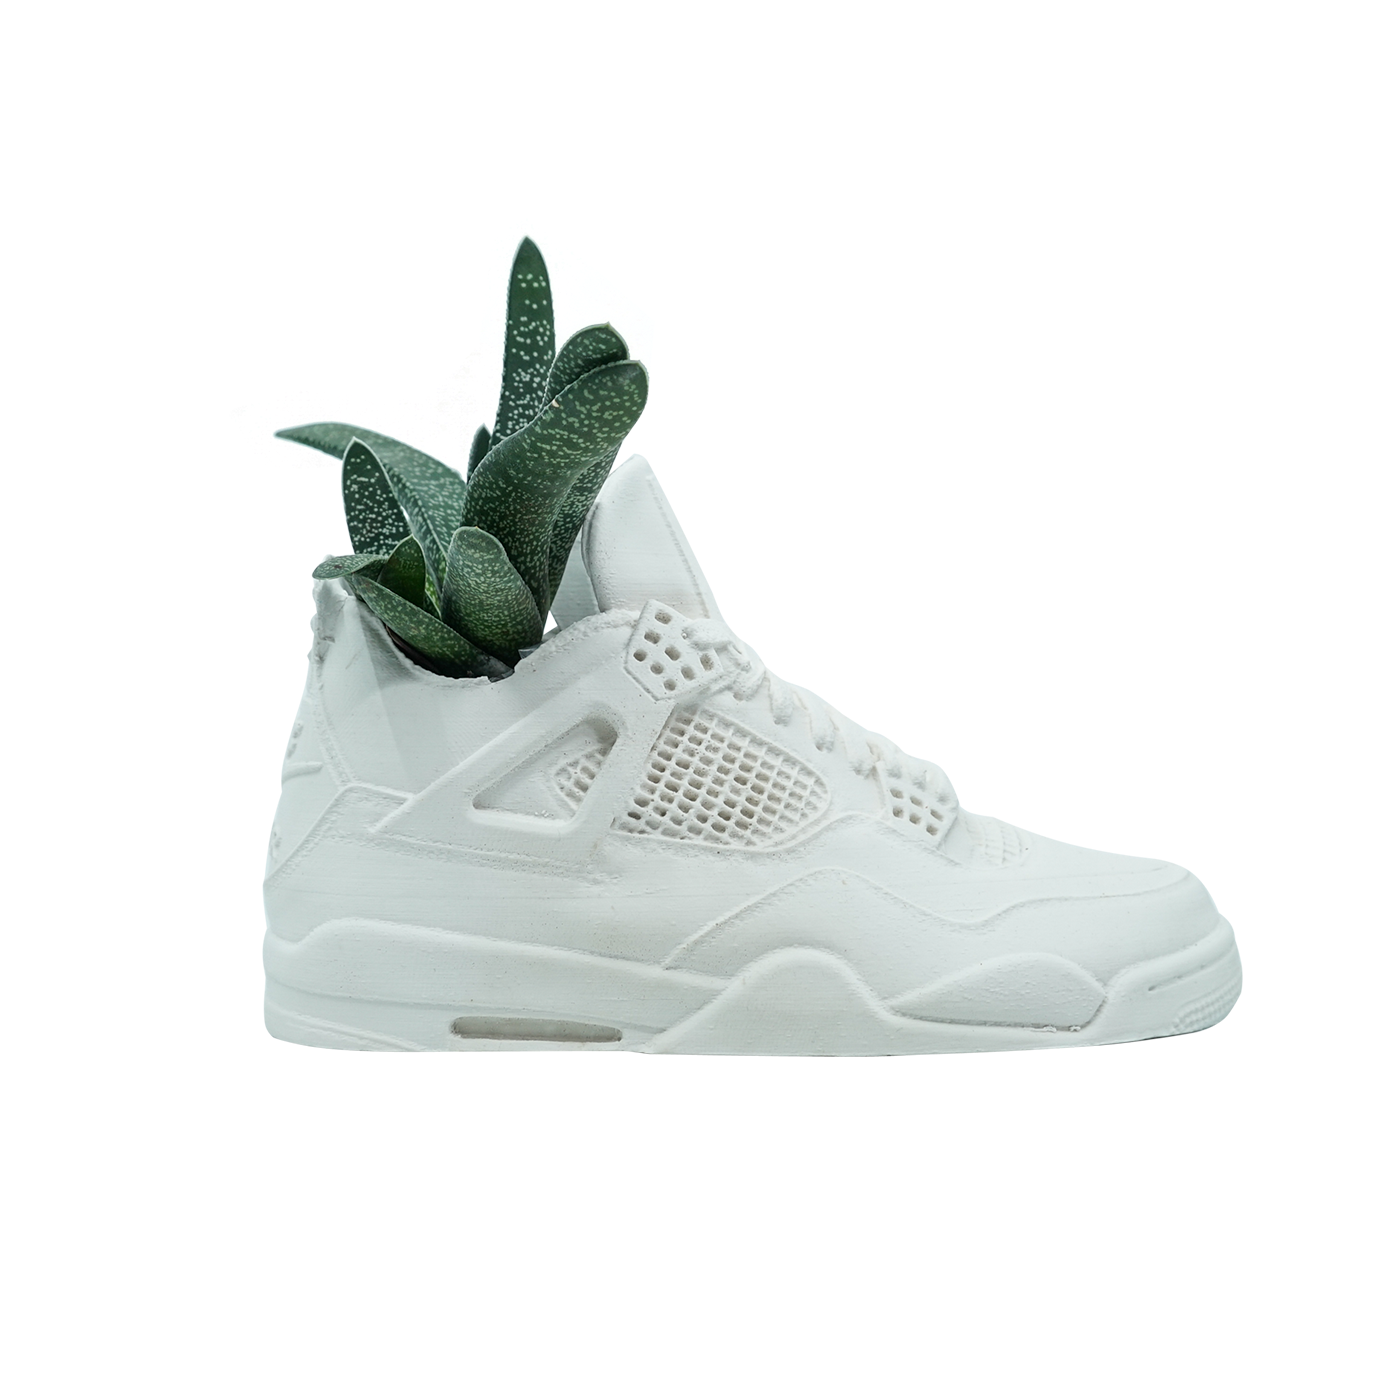 Jordan 4 Planter (White Cement, Single)